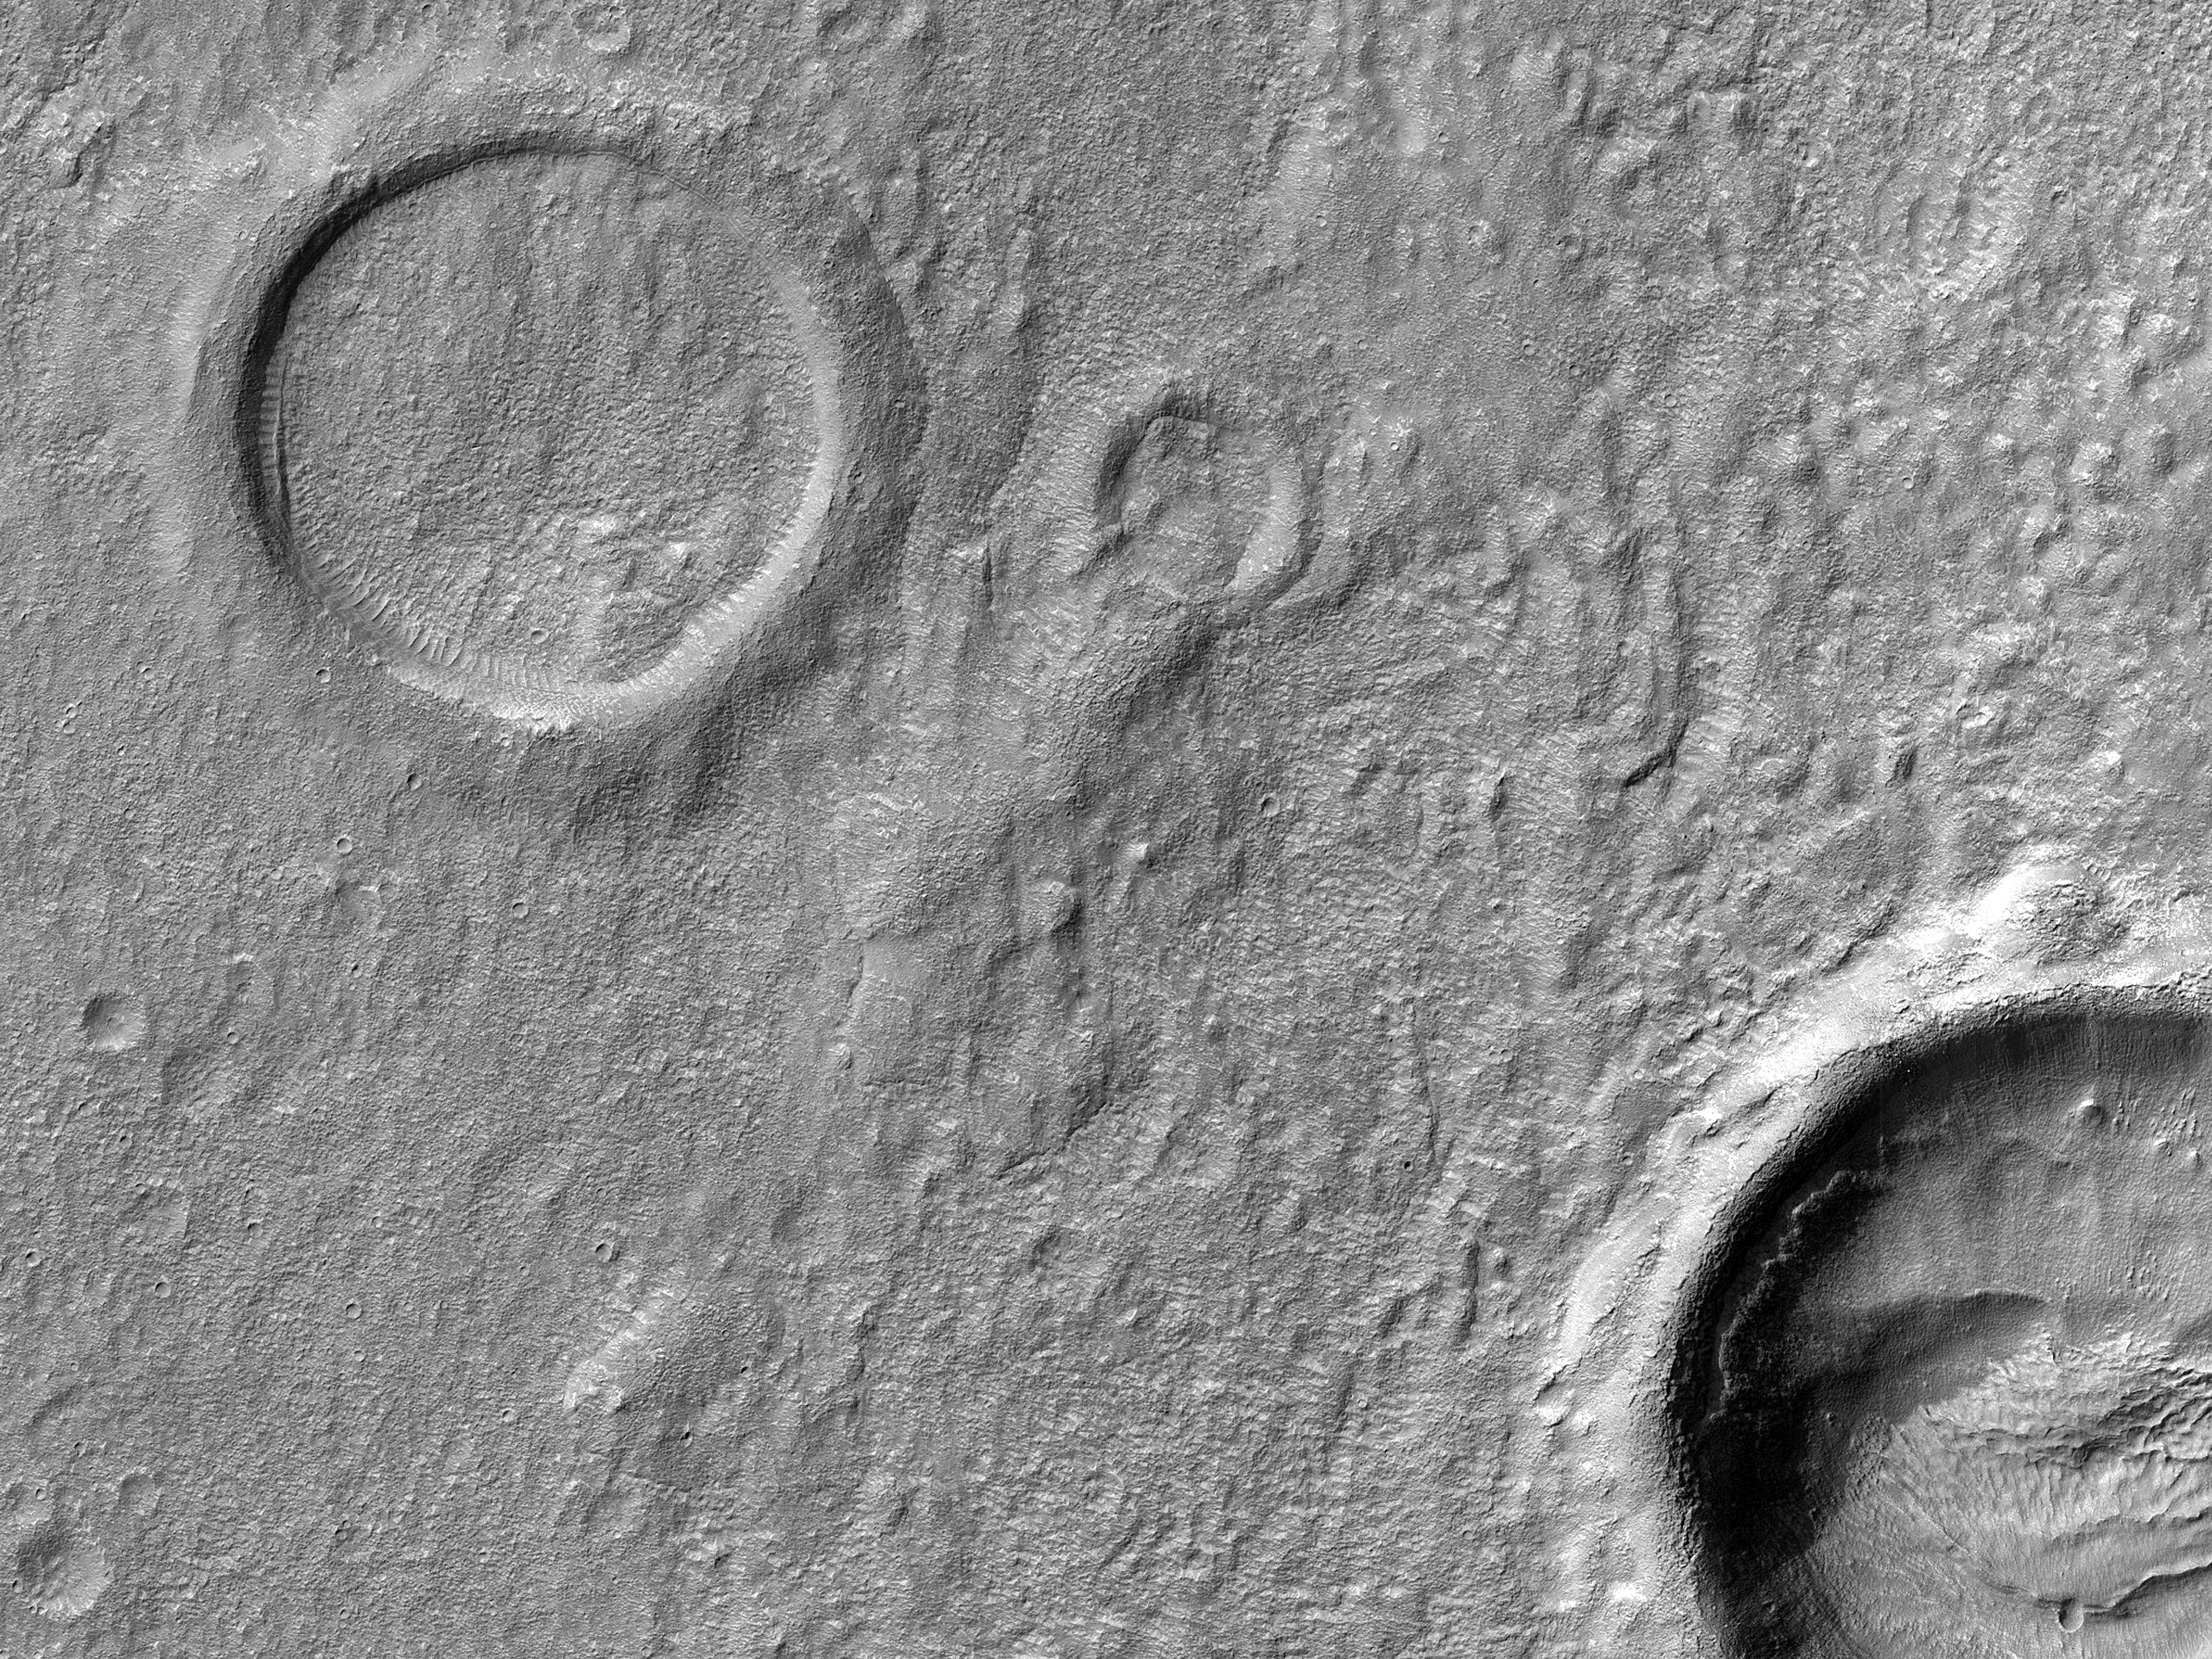 Small Craters in Promethei Terra